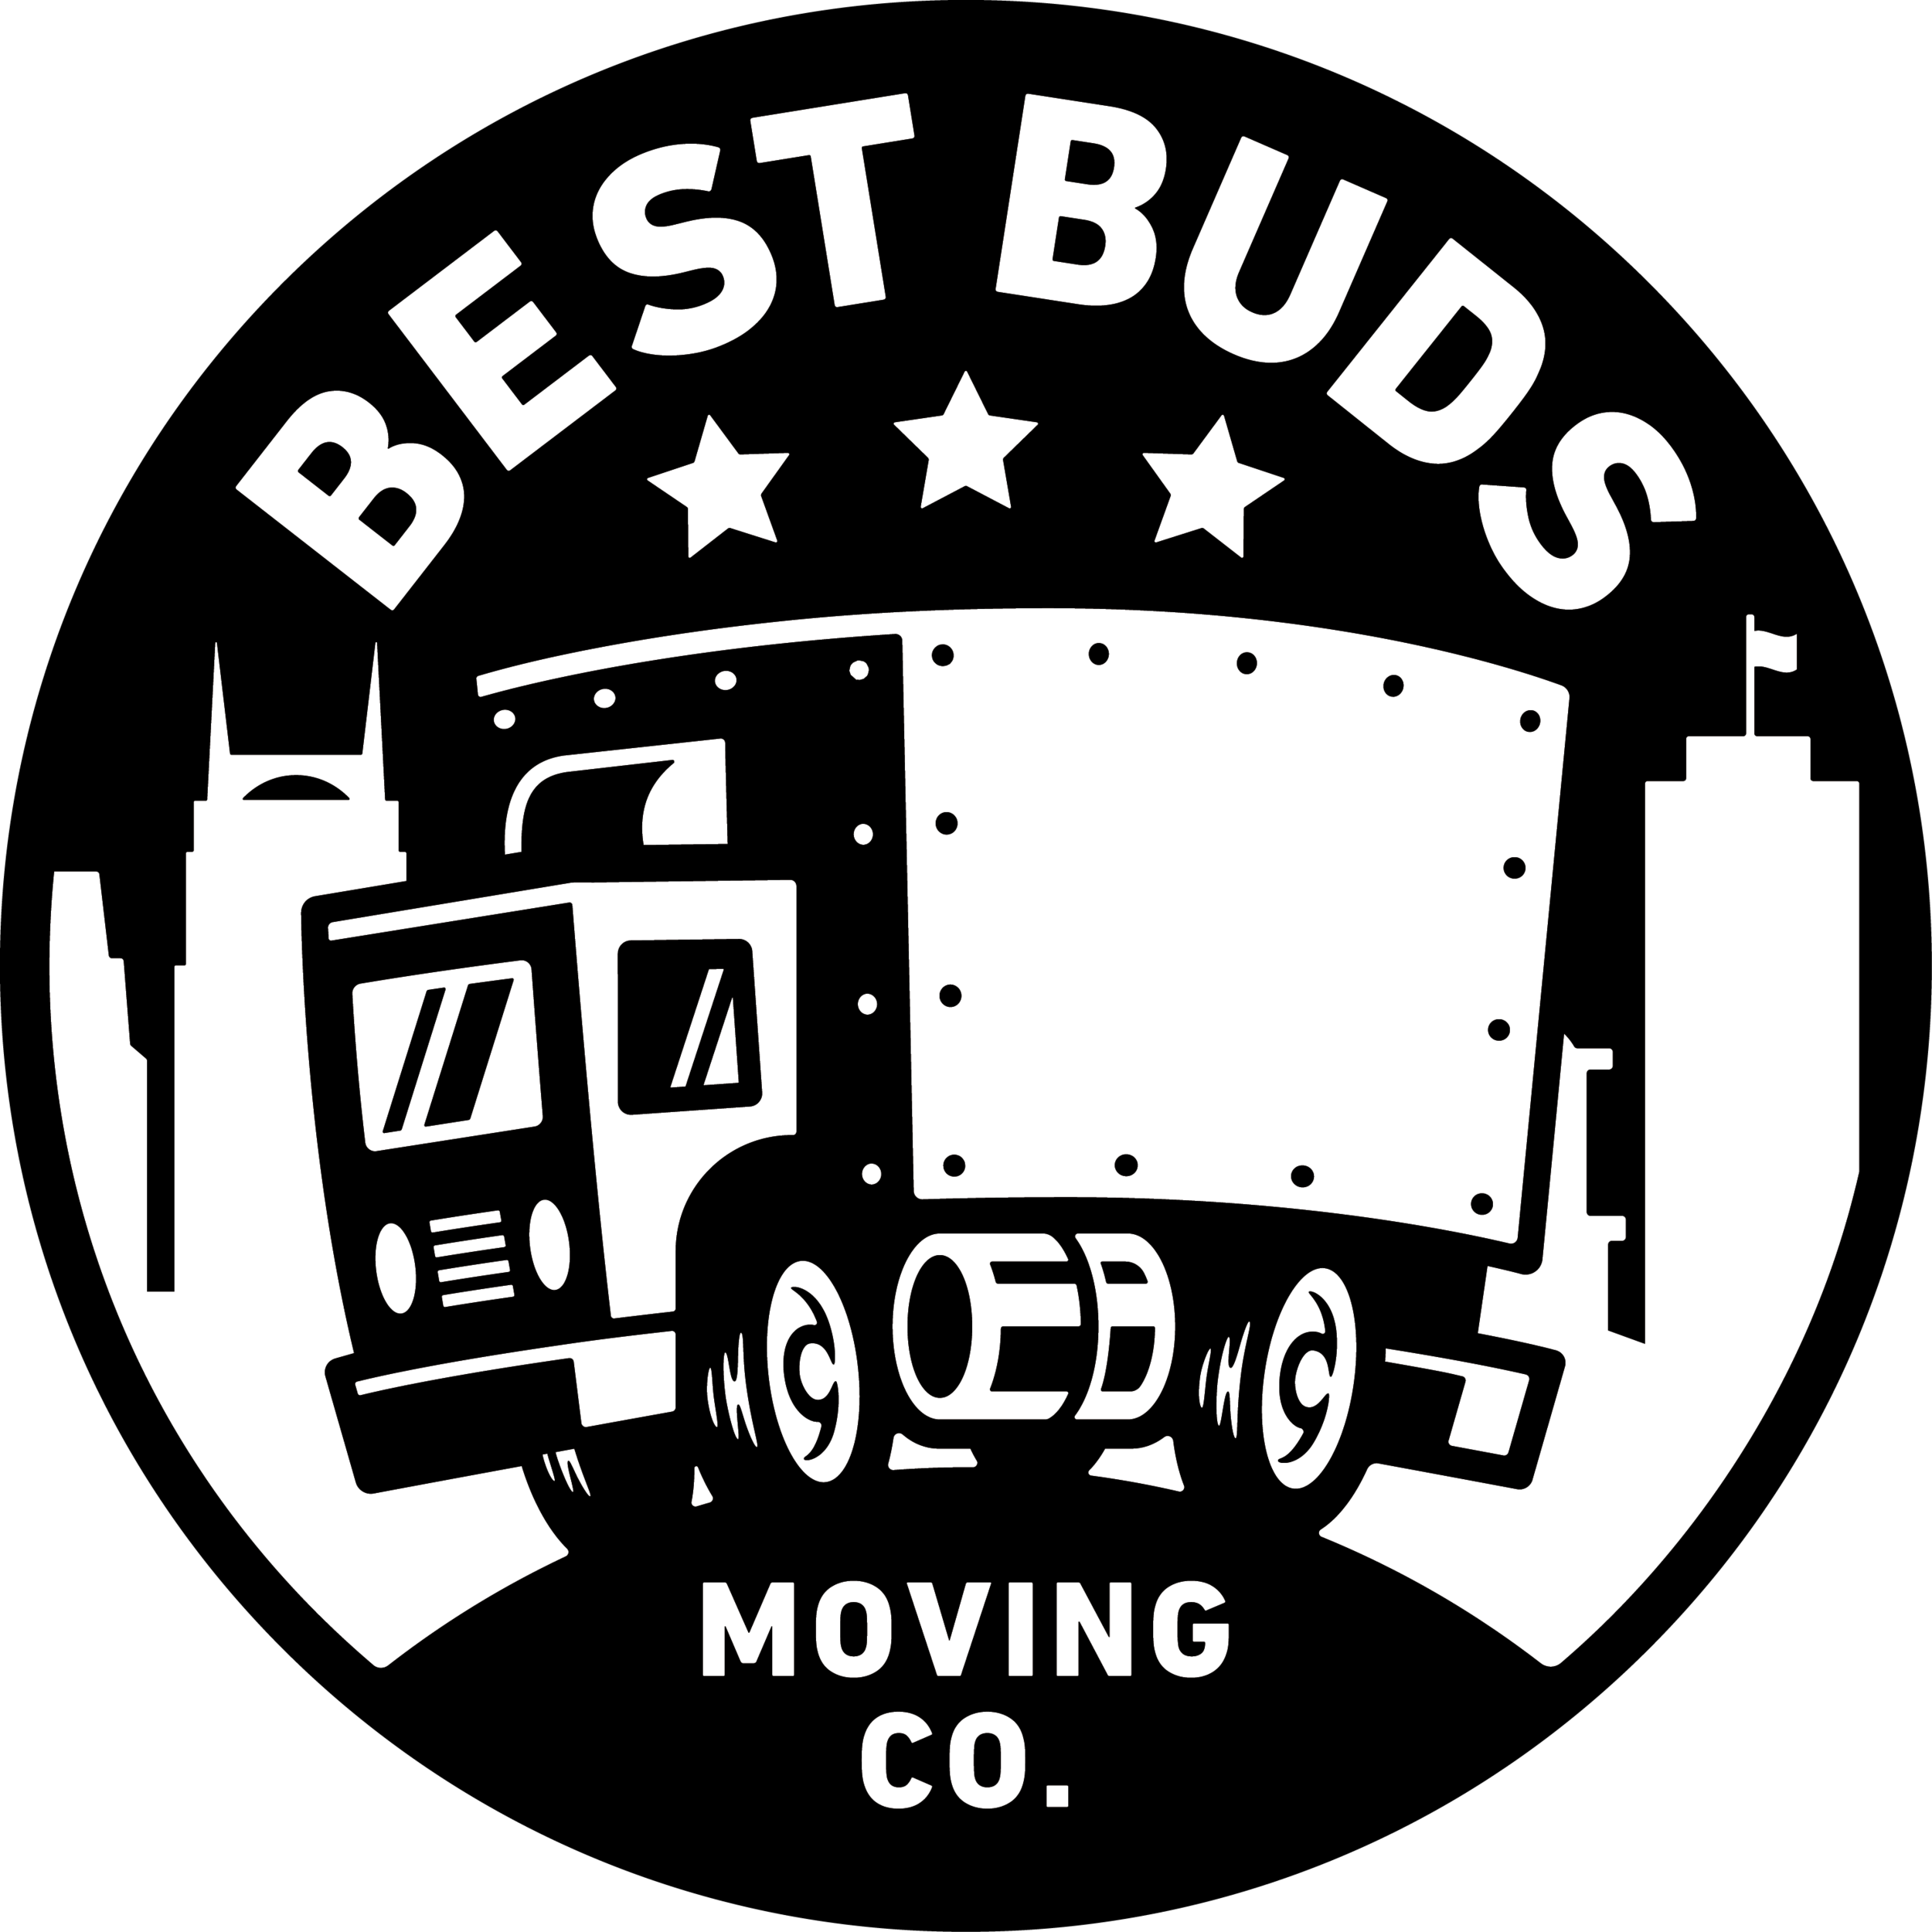 ABOUT US: - BEST BUDS, A LOCAL RESIDENTIAL FULL-SERVICE MOVING COMPANY OWNED AND OPERATED BY NASHVILLE NATIVES. OUR AIM IS TO PROVIDE QUALITY AND EXPERT RELOCATION SERVICES AT A COMPETITIVE RATE TO MIDDLE TENNESSEE RESIDENTS SEEKING ASSISTANCE WITH MOVING THEIR HOUSEHOLDS. FOUNDED BY A VETERAN OF THE UNITED STATES ARMED SERVICES, WE PROMISE TO PUT SERVICE BEFORE SELF AND EMBODY INTEGRITY, AND EXCELLENCE IN EVERY MOVE THAT WE MAKE.